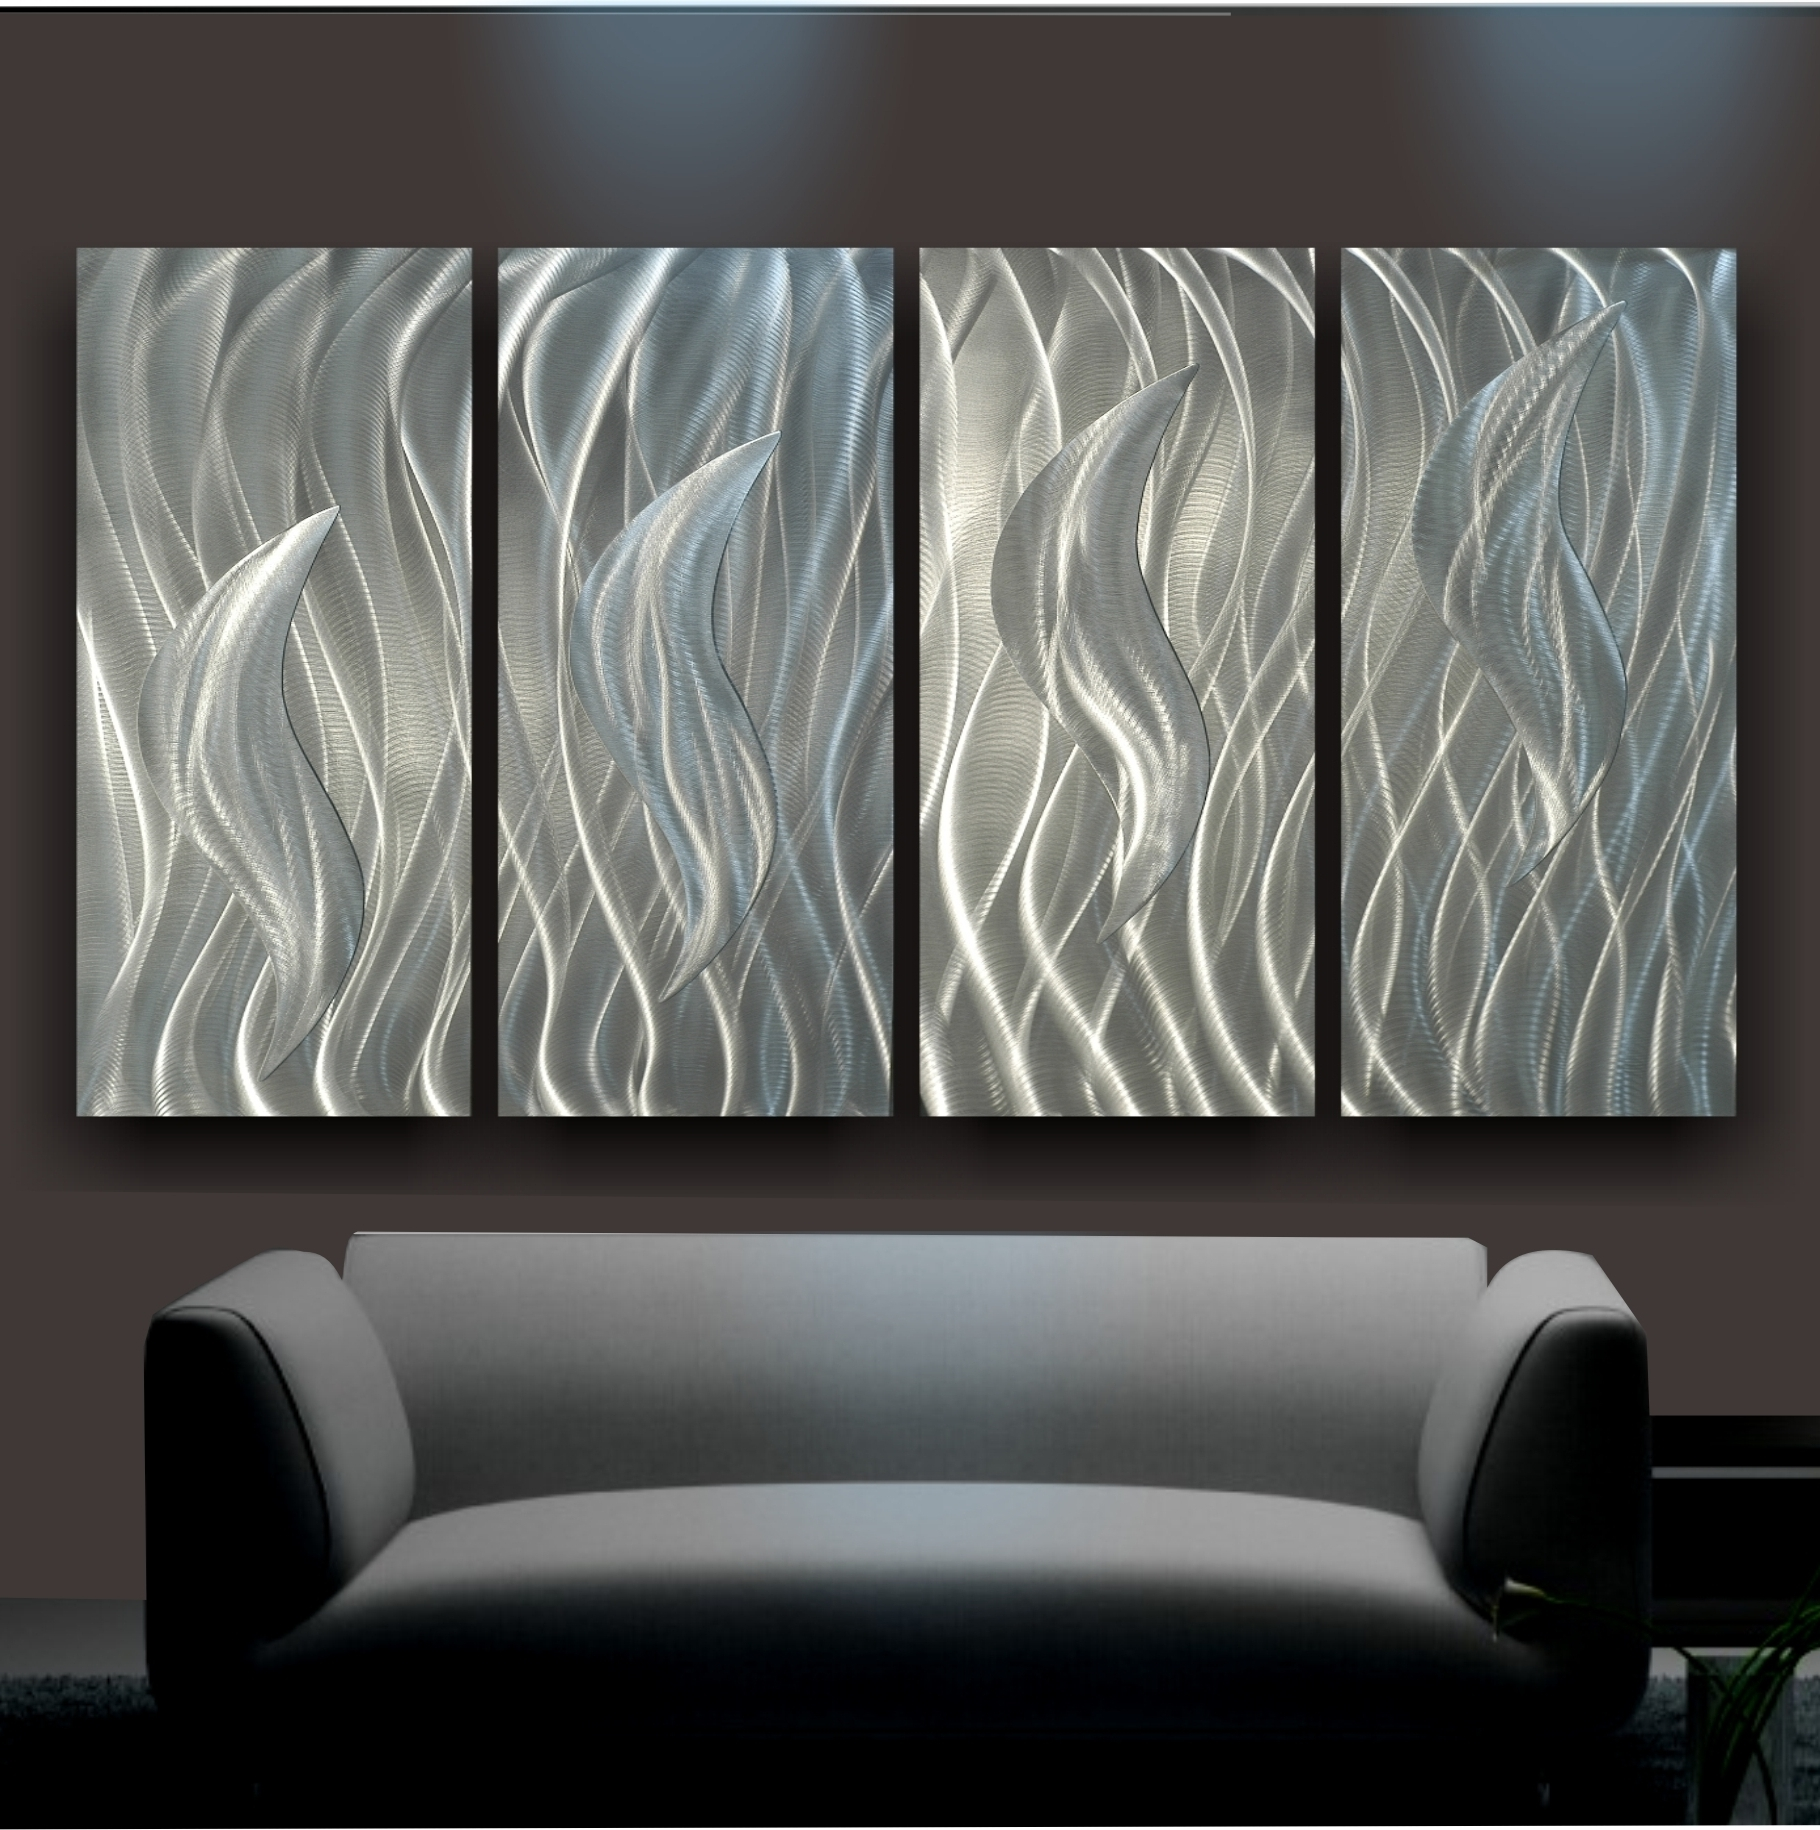 Steel Wall Surface Fine Art Is A Contemporary Sort Of Art Work Within Most Recently Released Unique Modern Wall Art (View 13 of 15)